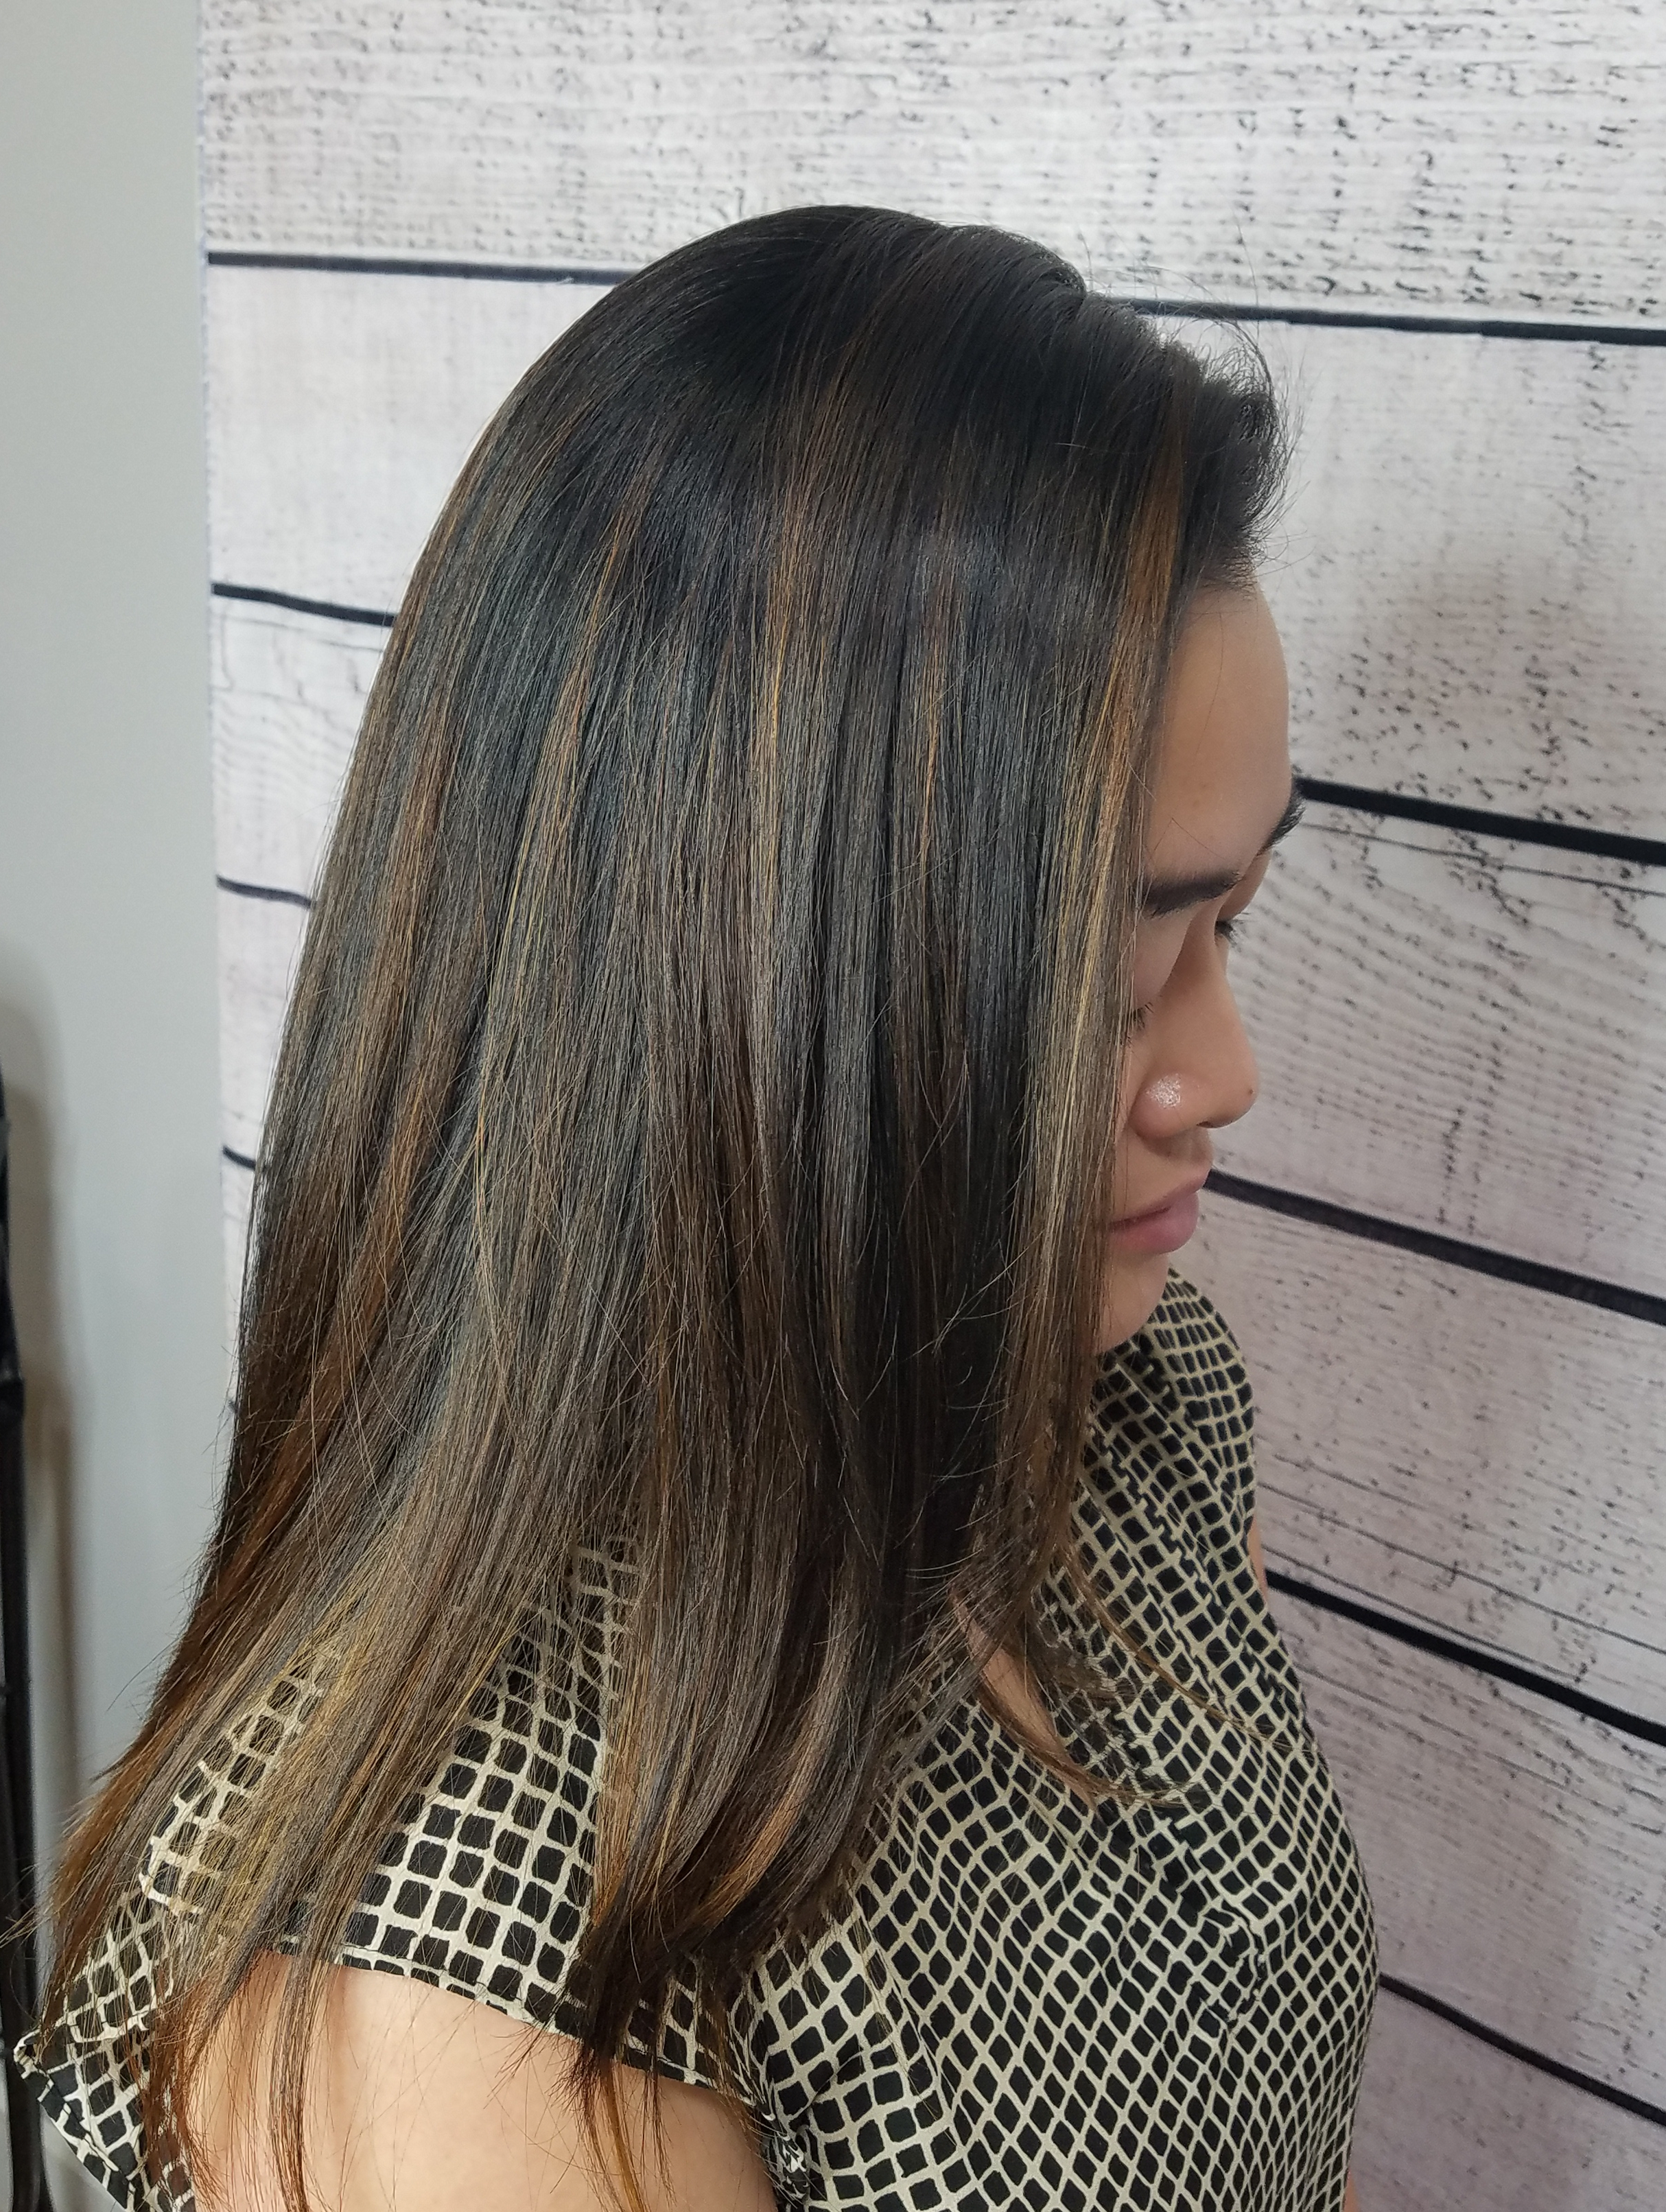 Full head balayage